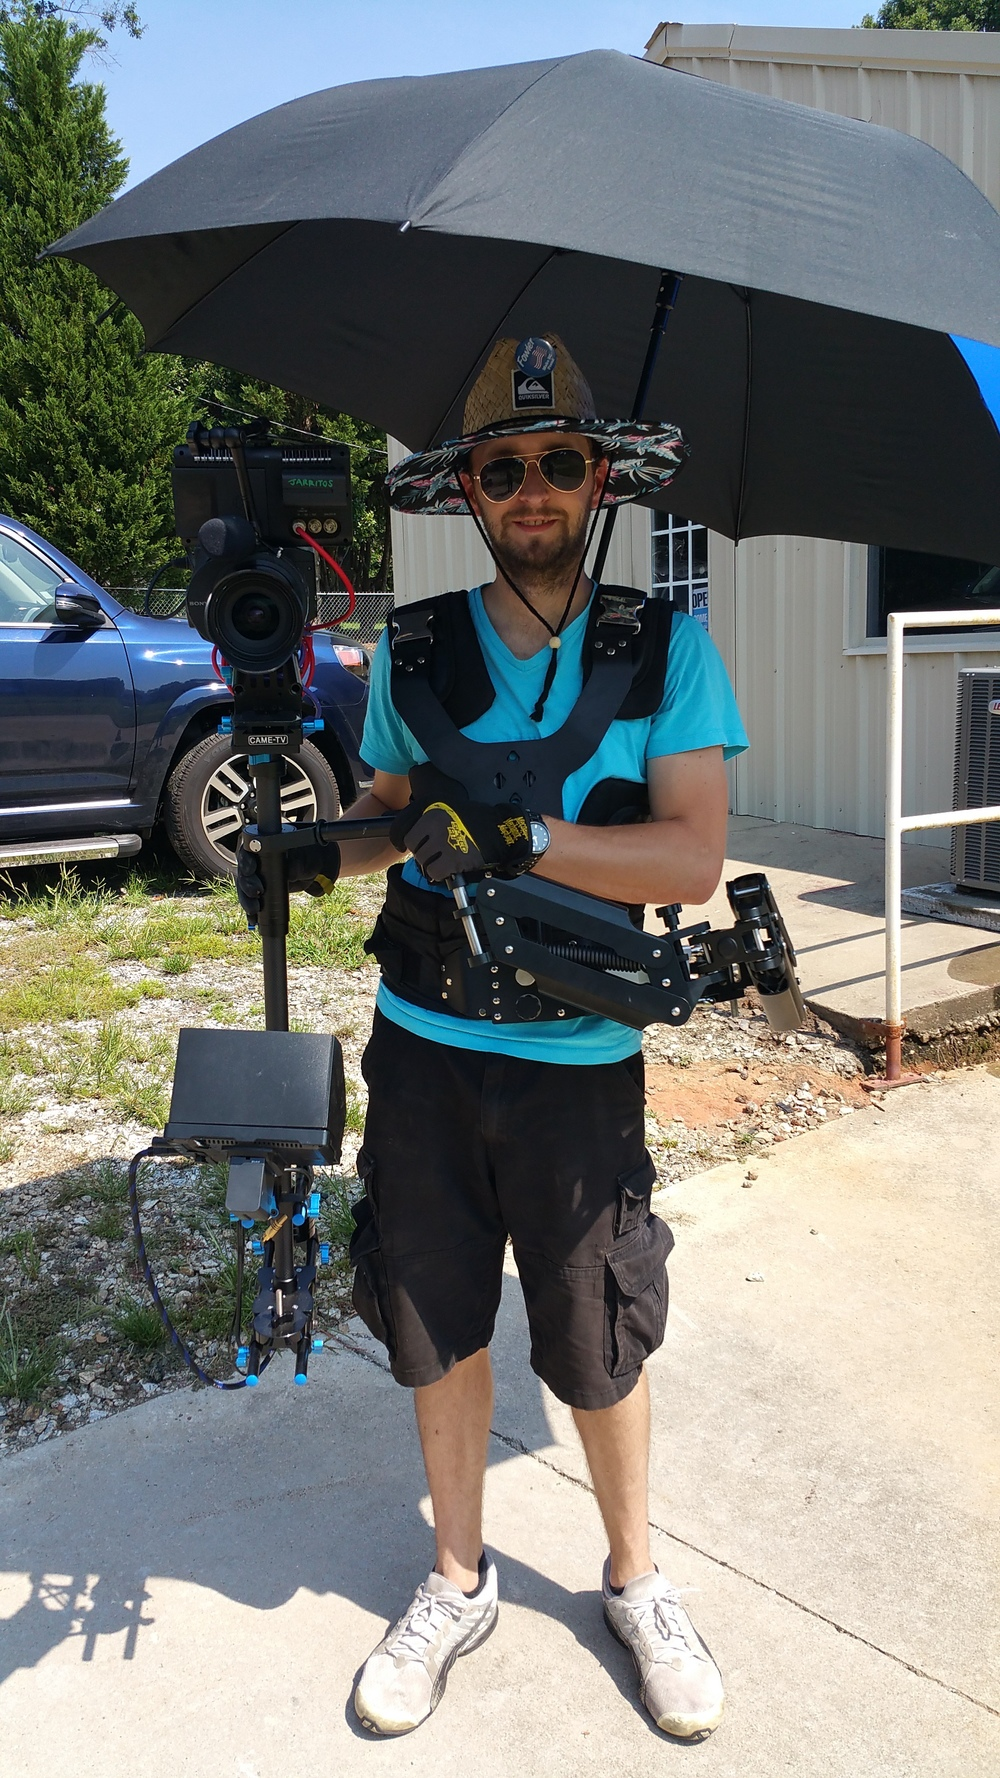 Jason Elliott Steadicam